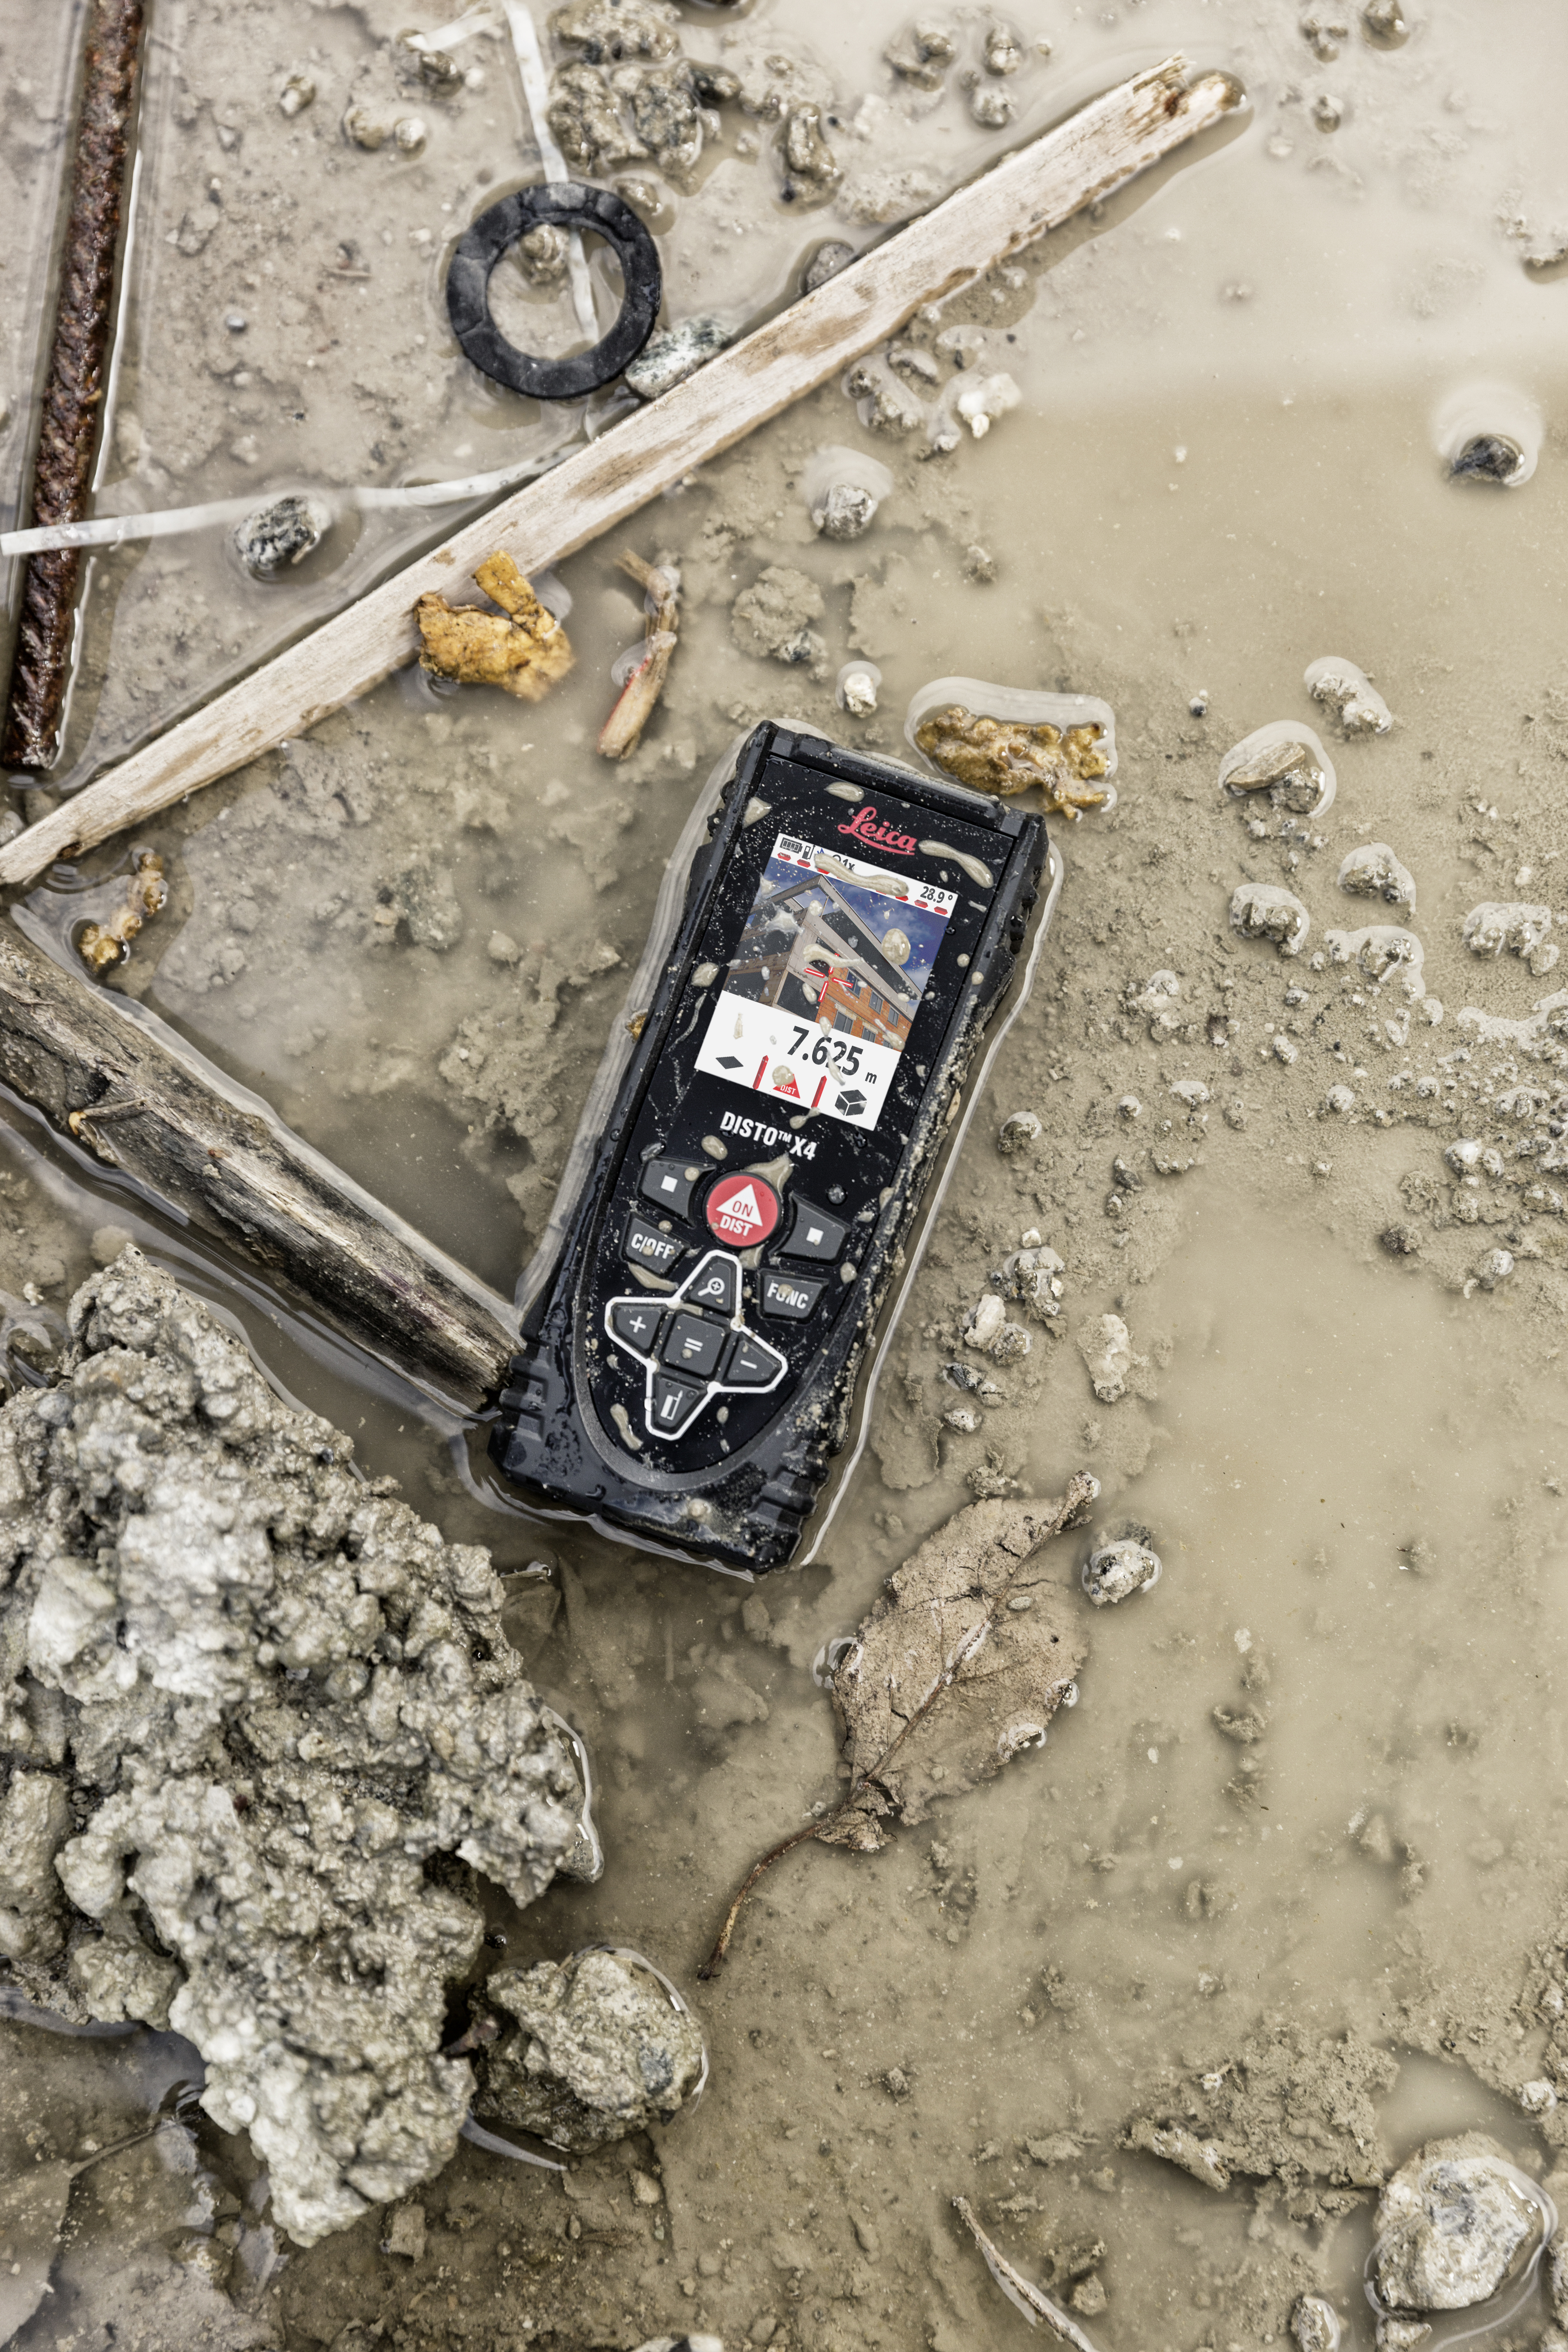 The Leica DISTO X4 with IP65 protection (dust and jet water protection)